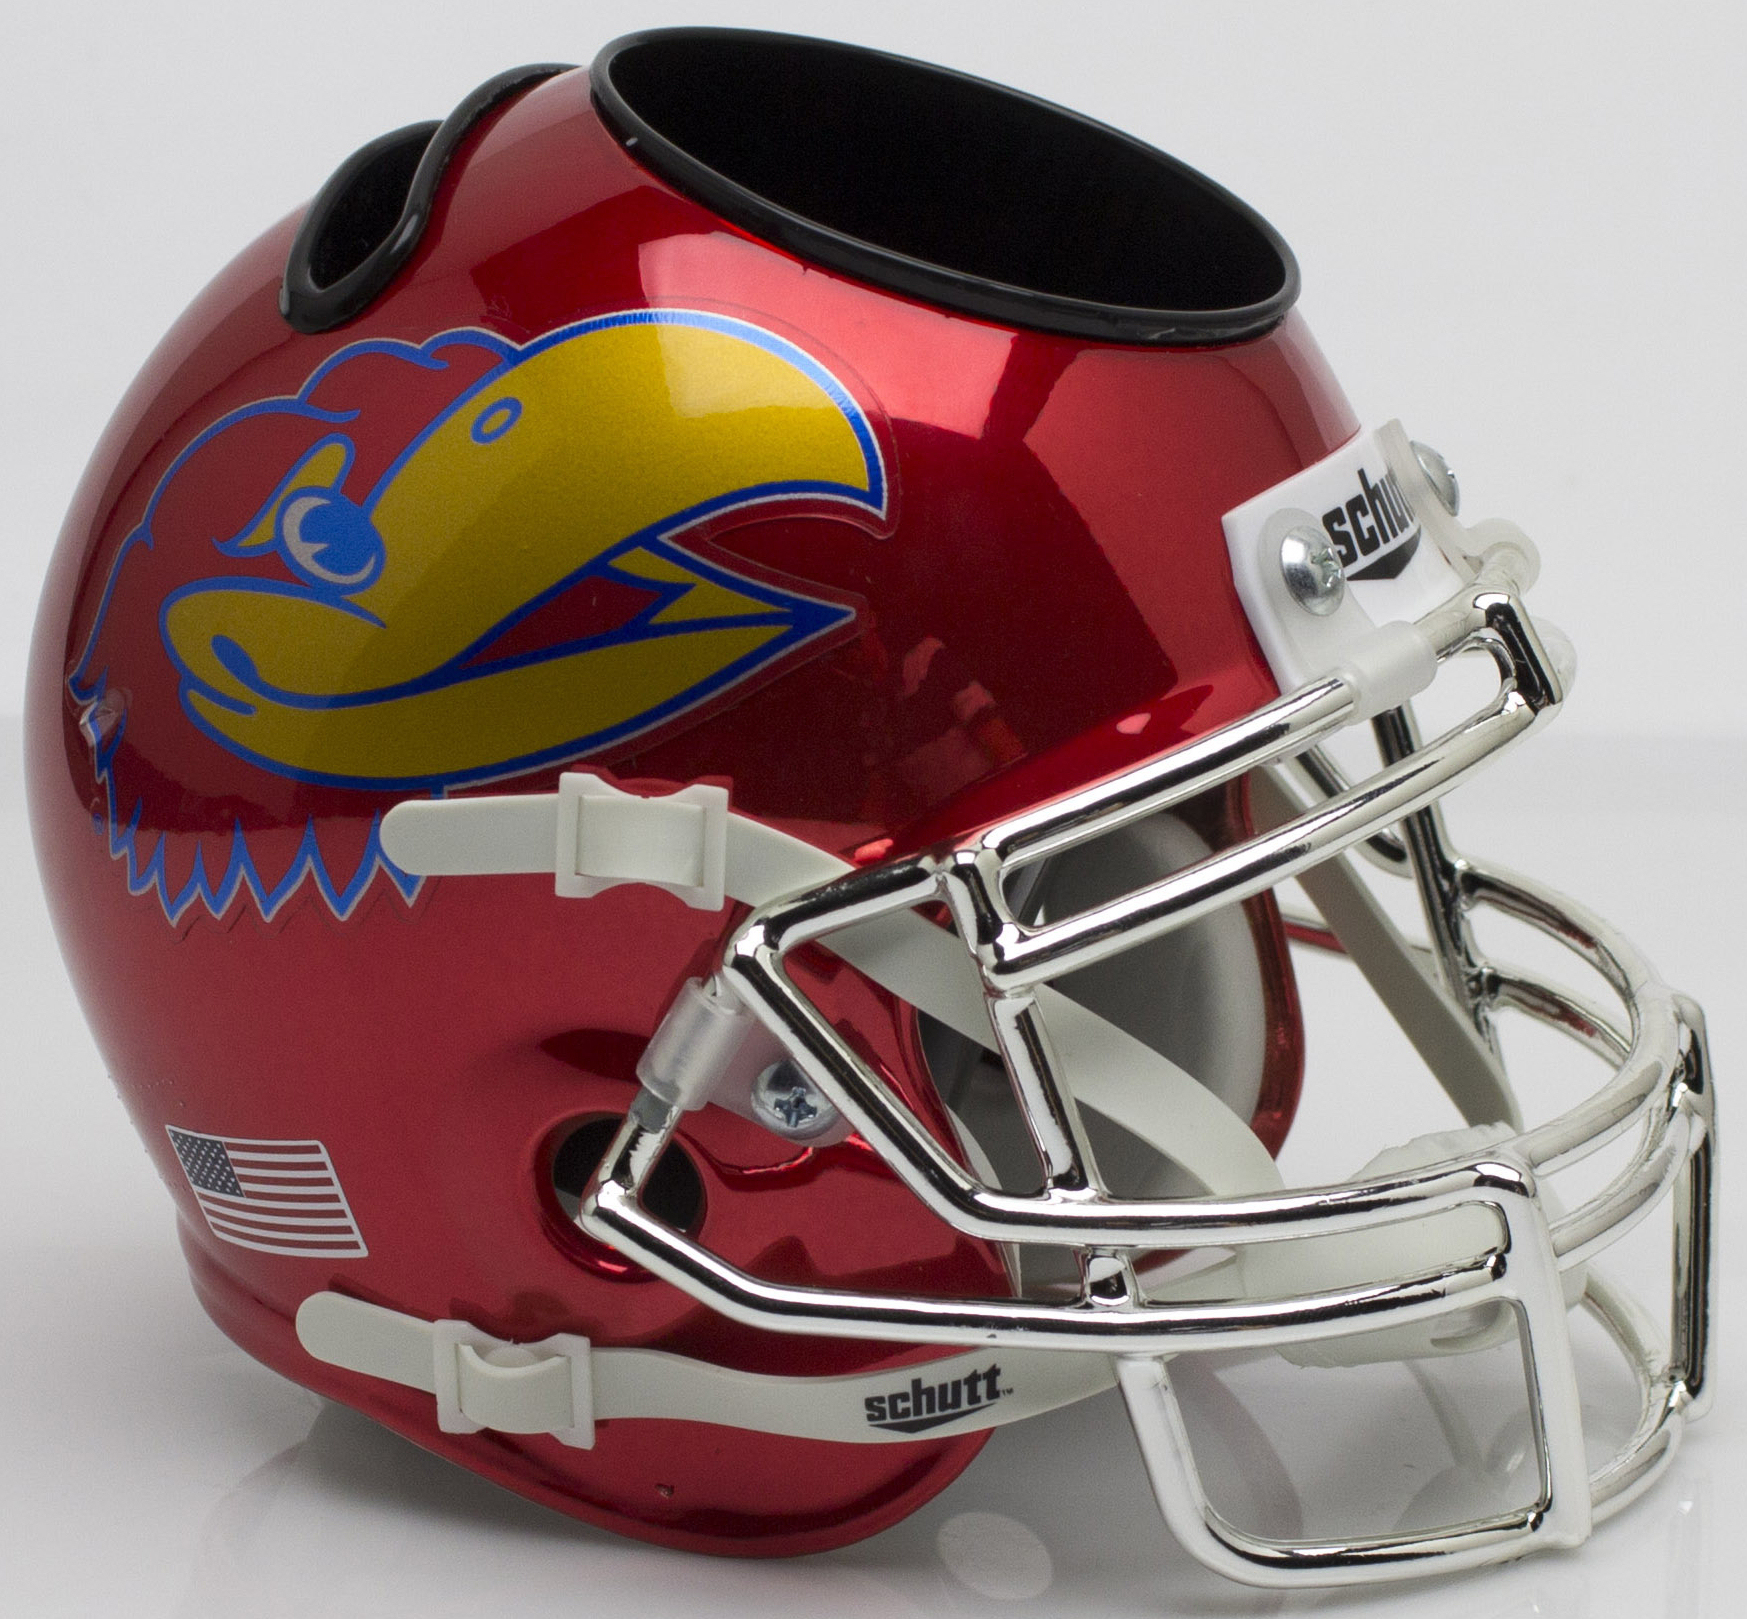 Kansas Jayhawks Miniature Football Helmet Desk Caddy <B>Scarlet Red Large Decal</B>